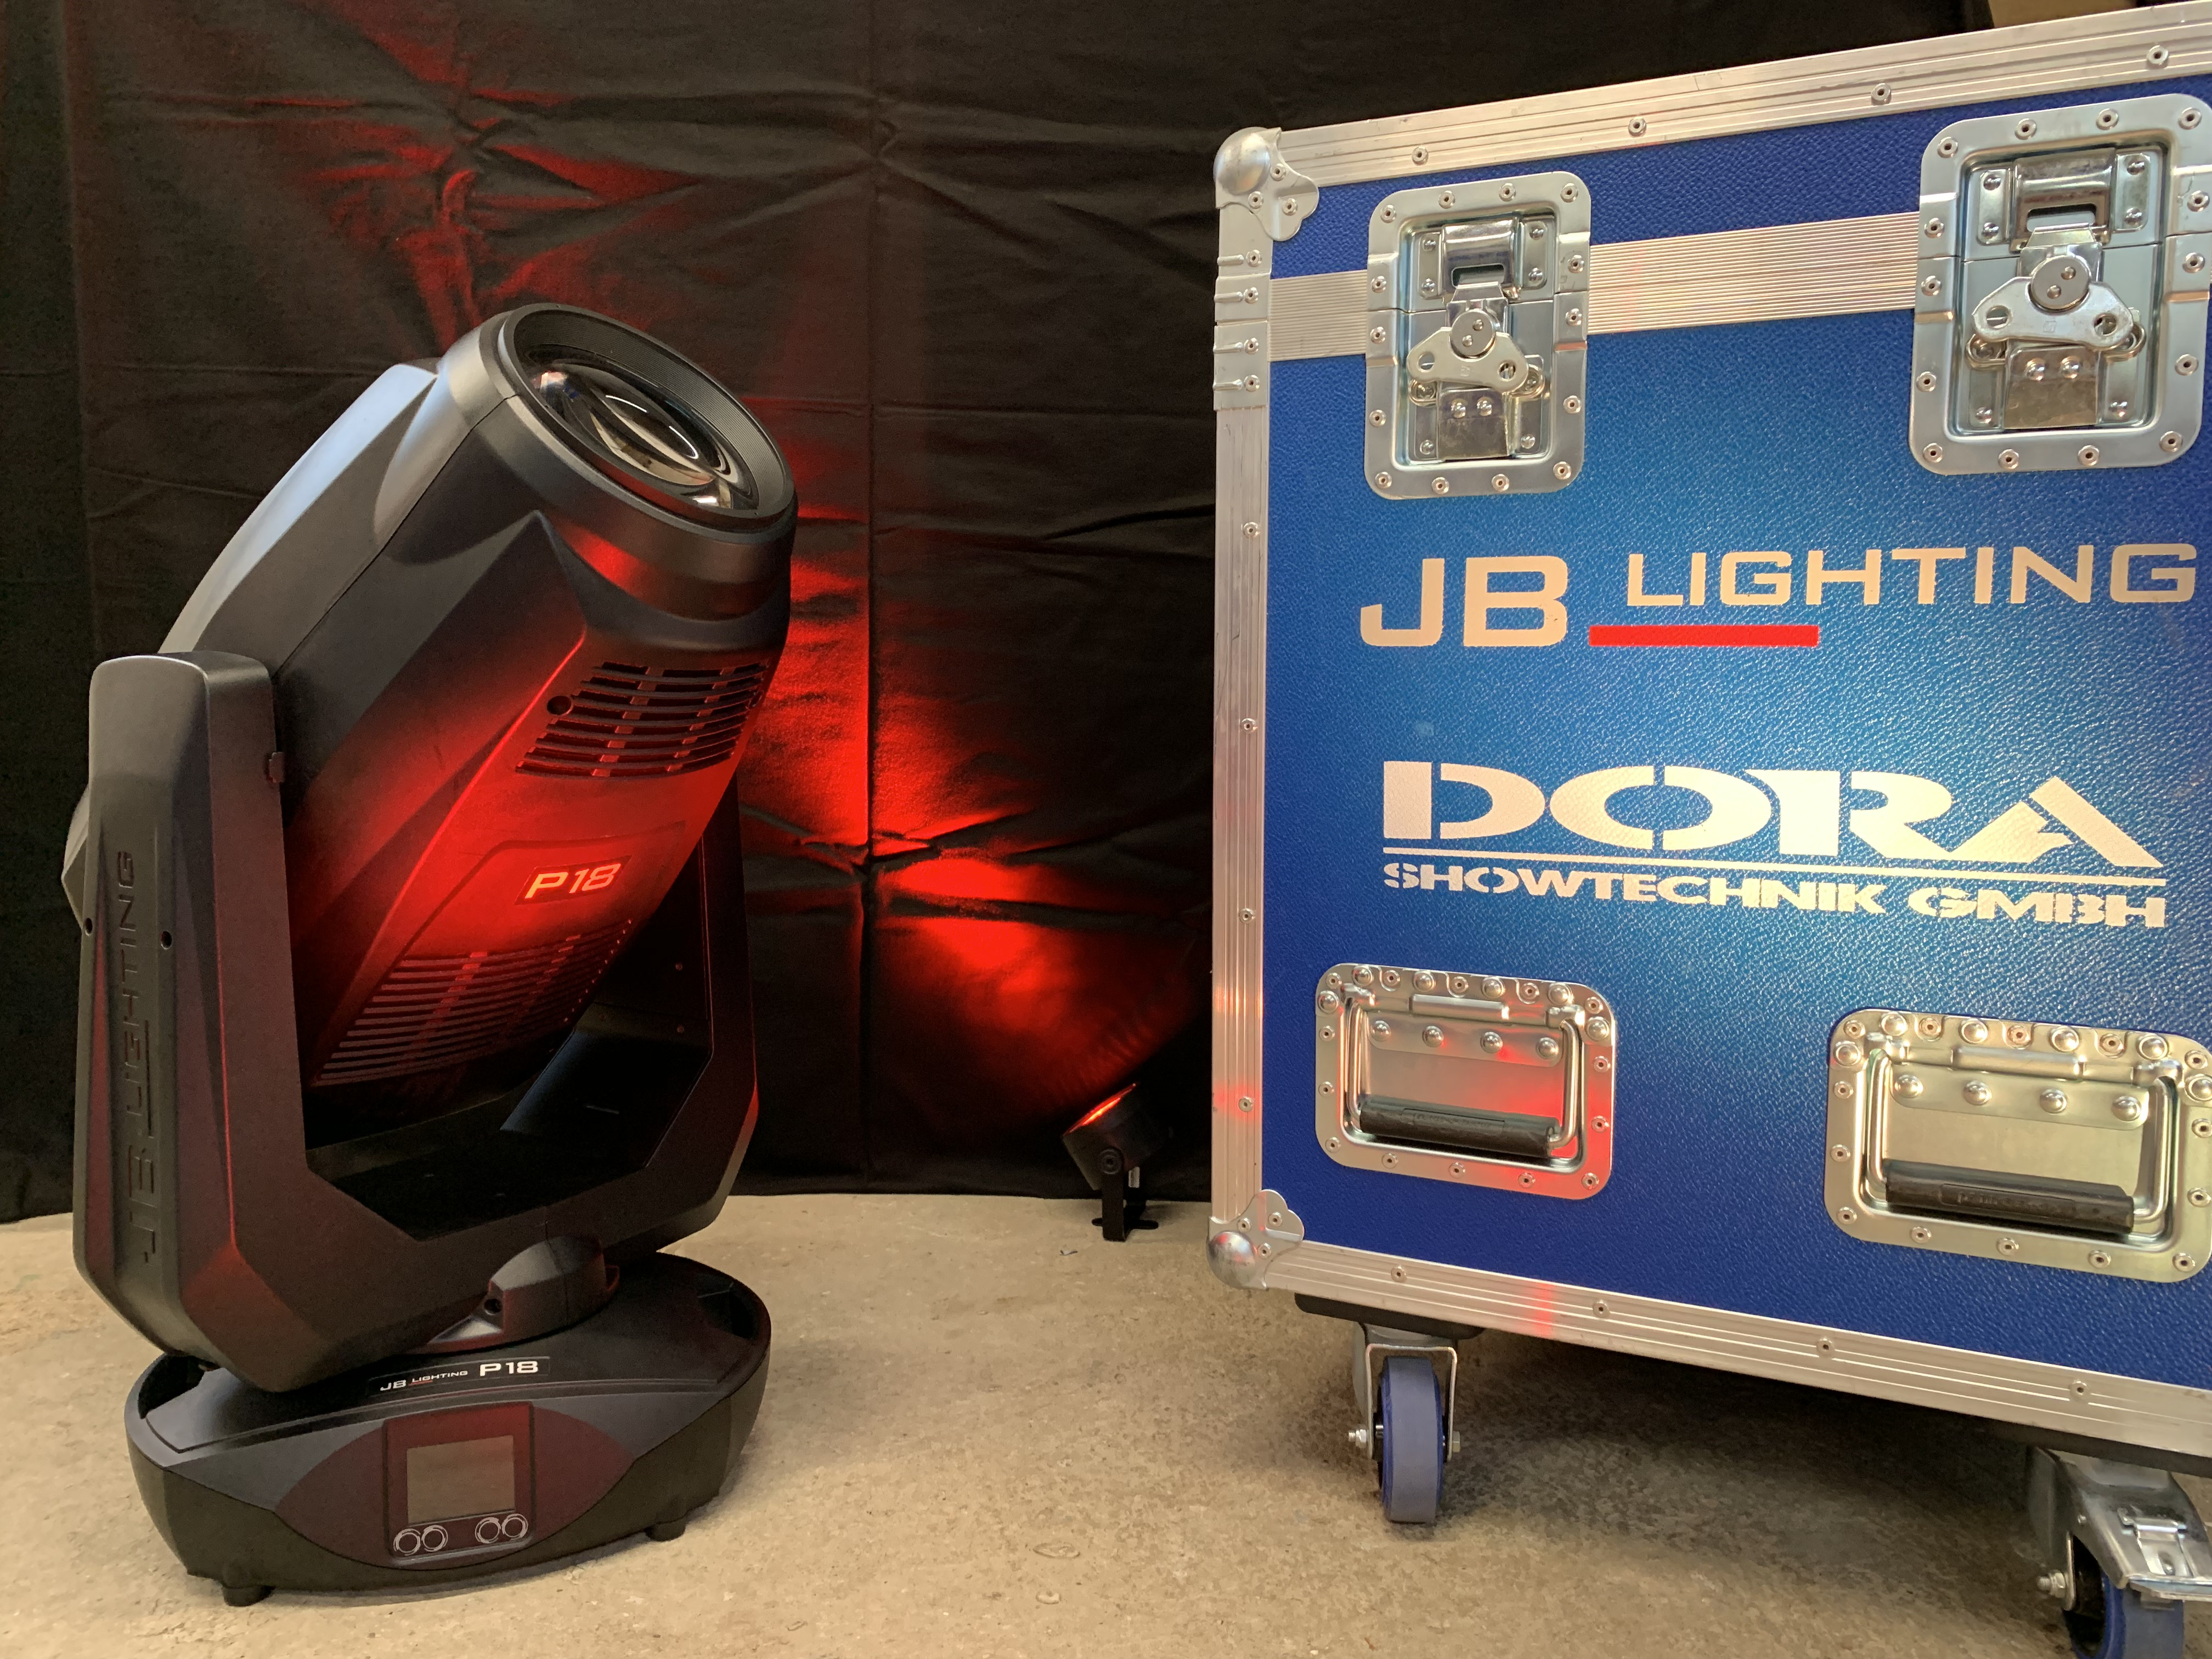 Jb Lighting Service Licht Dora Showtechnik Gmbh Full Service Eventtechnik